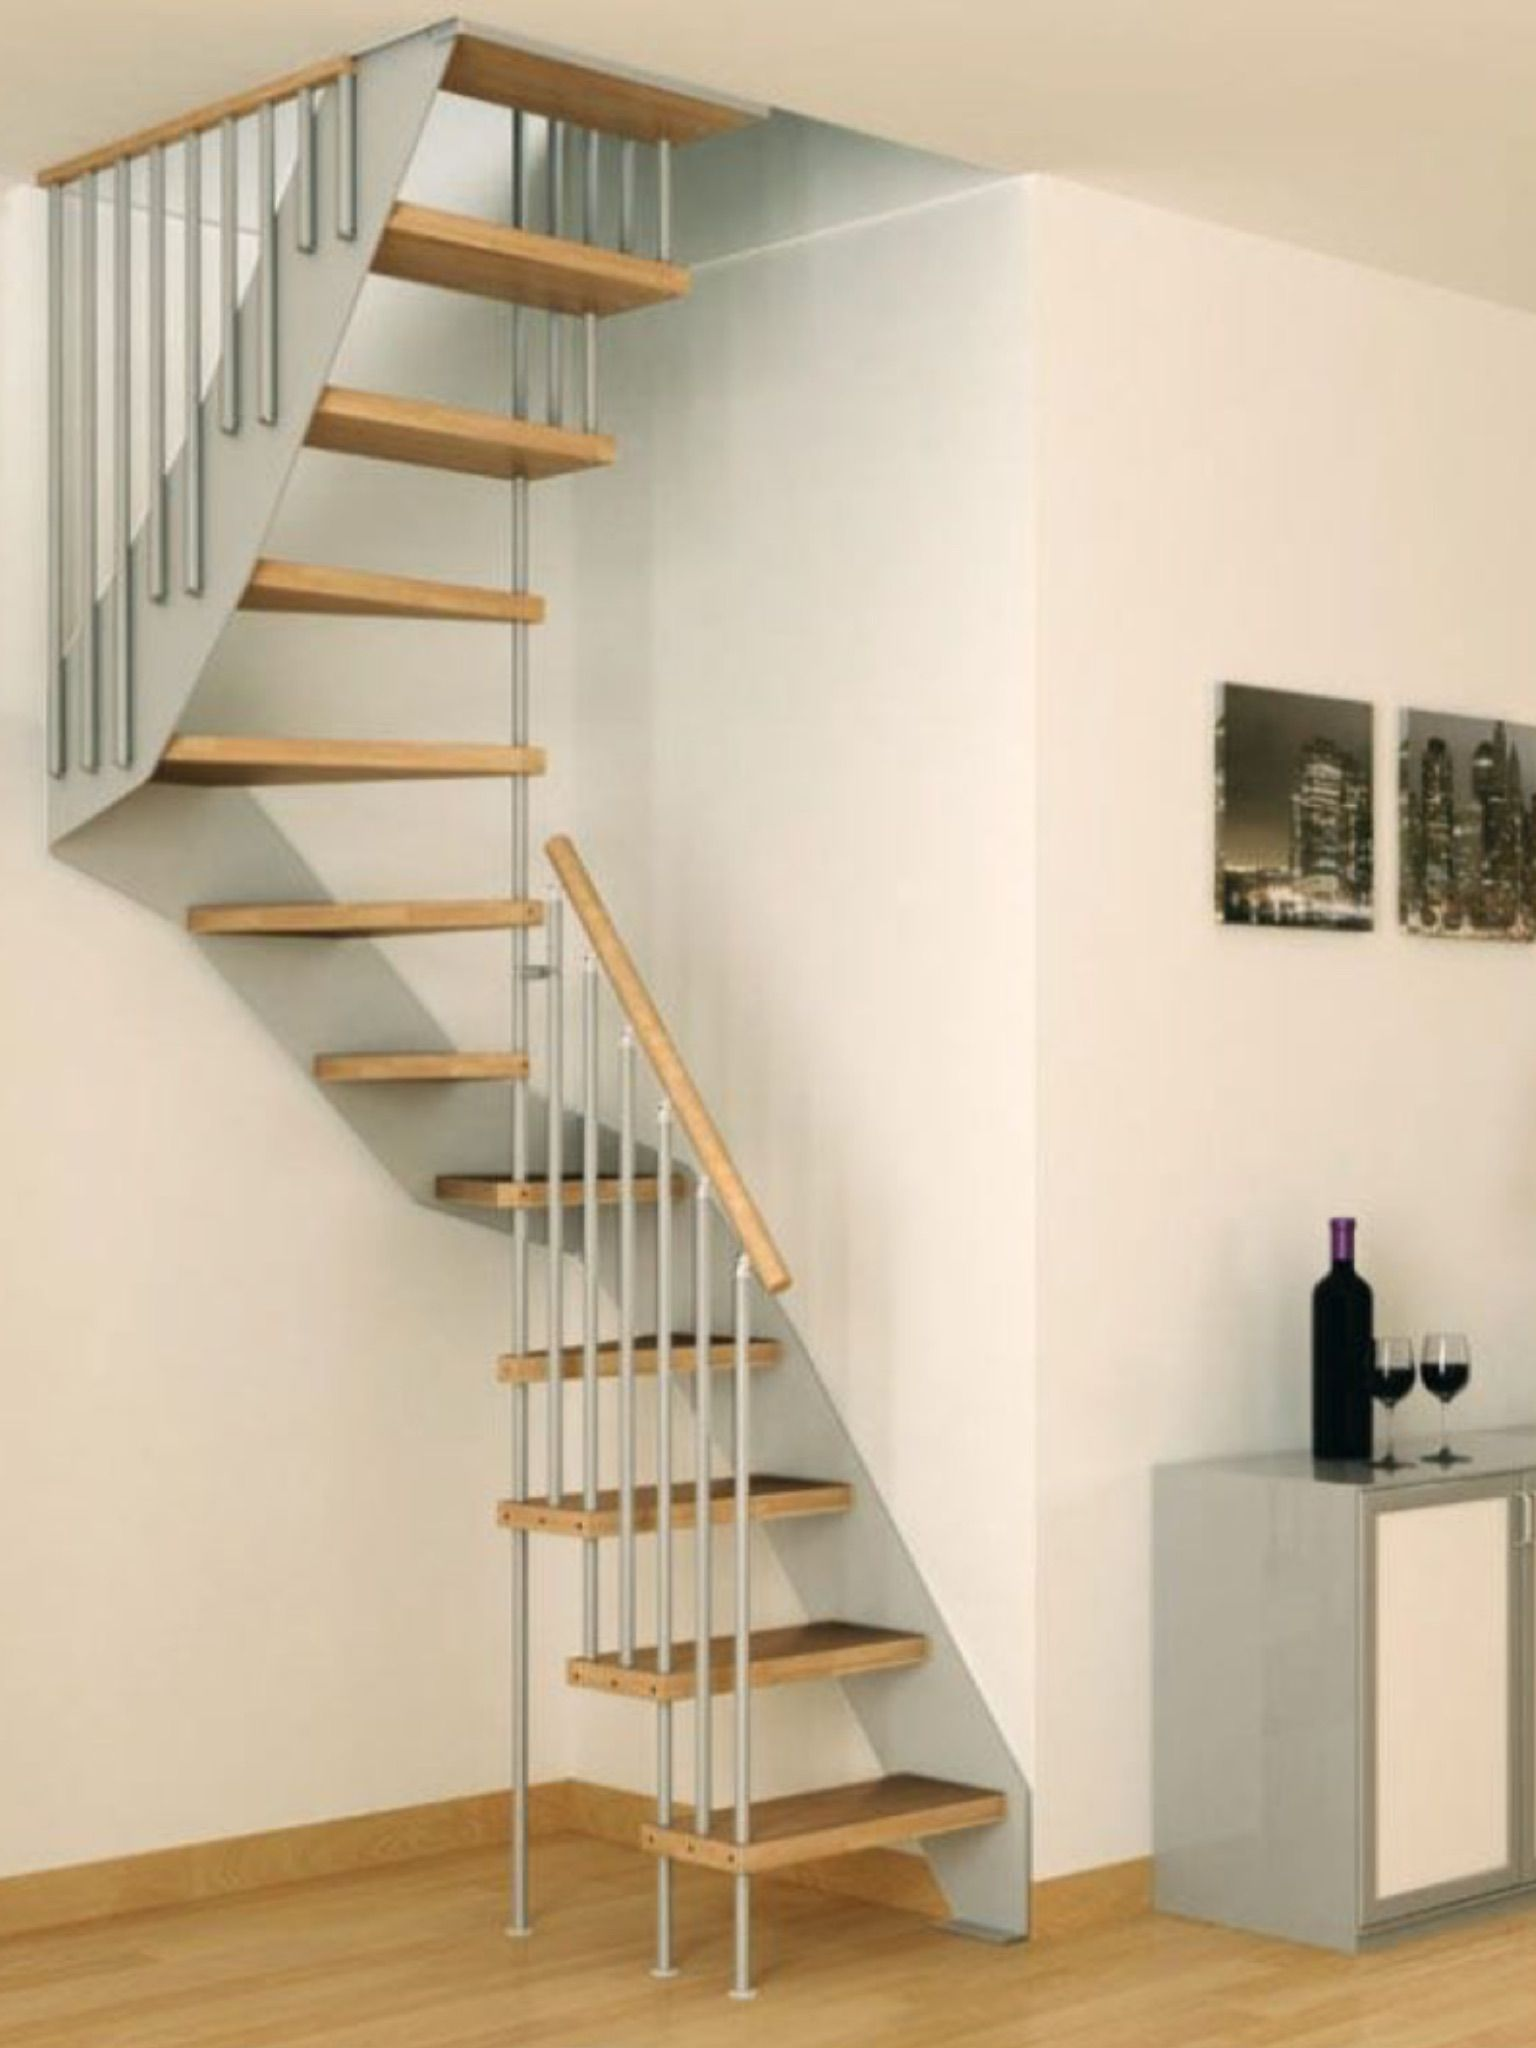 Stair Options For Small Spaces Pin By Sylwia Zabawa On Hallway Ideas Pinterest Loft